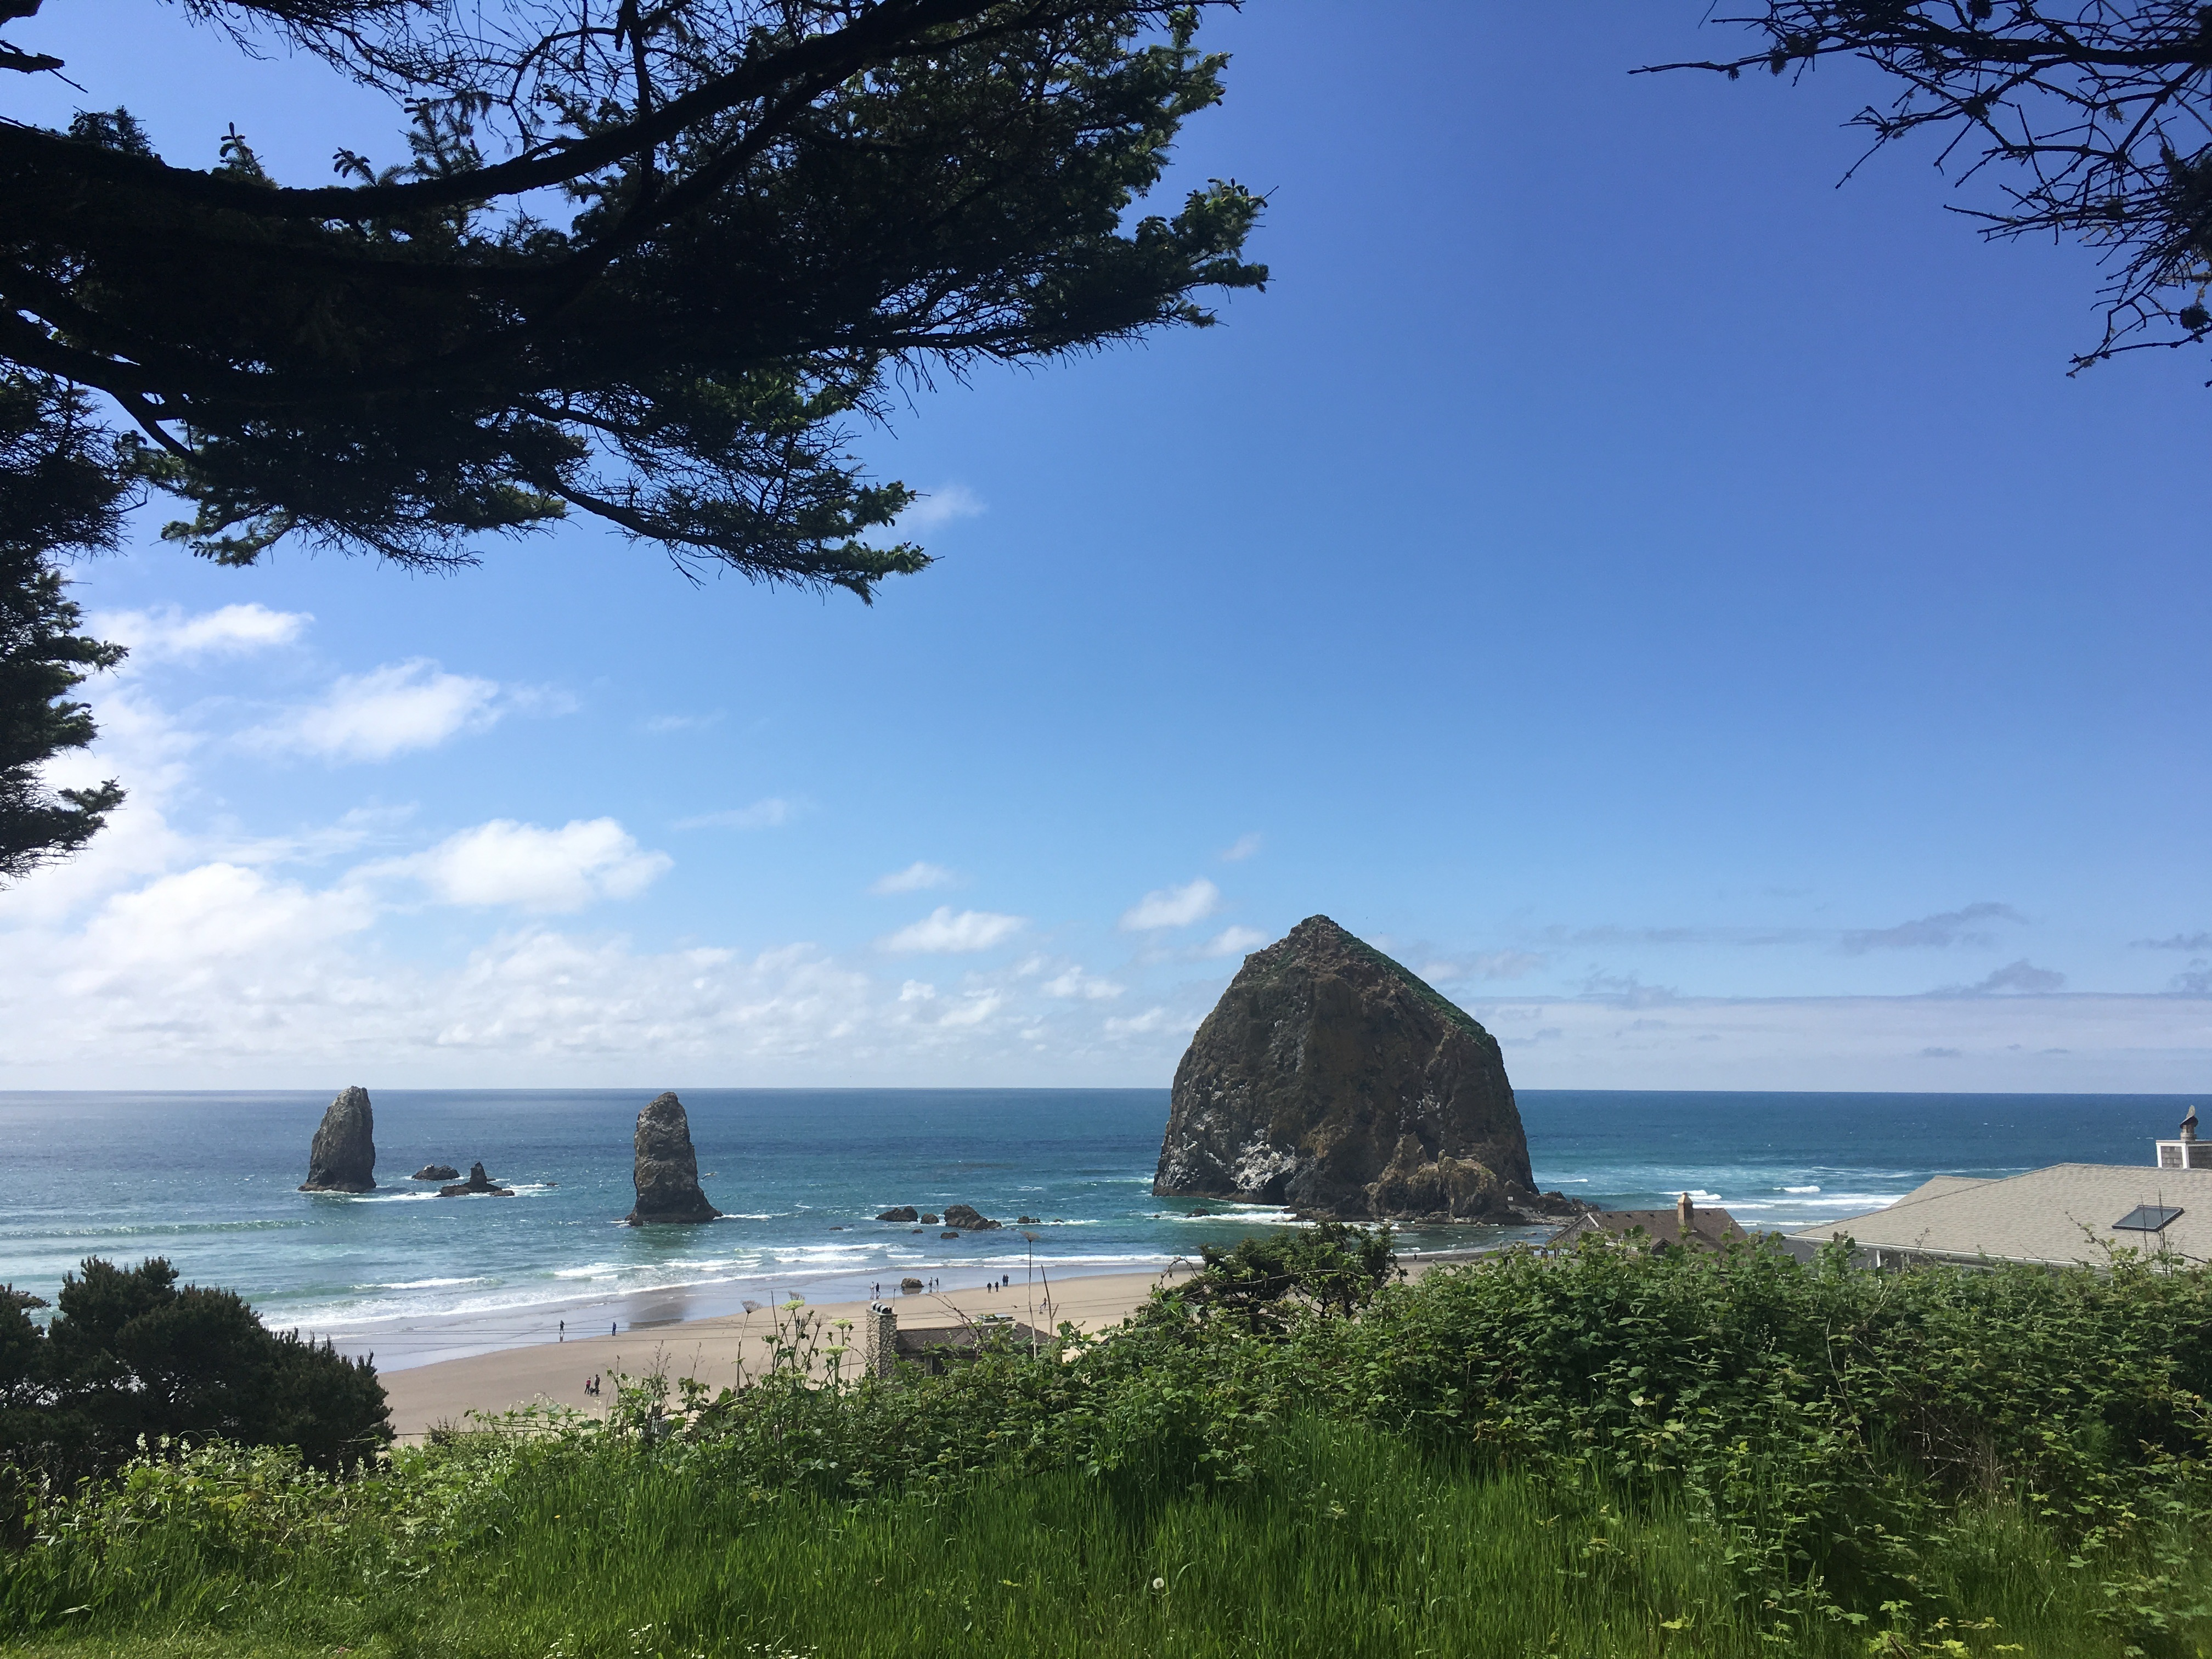 Haystack Rock within the ocean water near a beach in Cannon Beach, Oregon